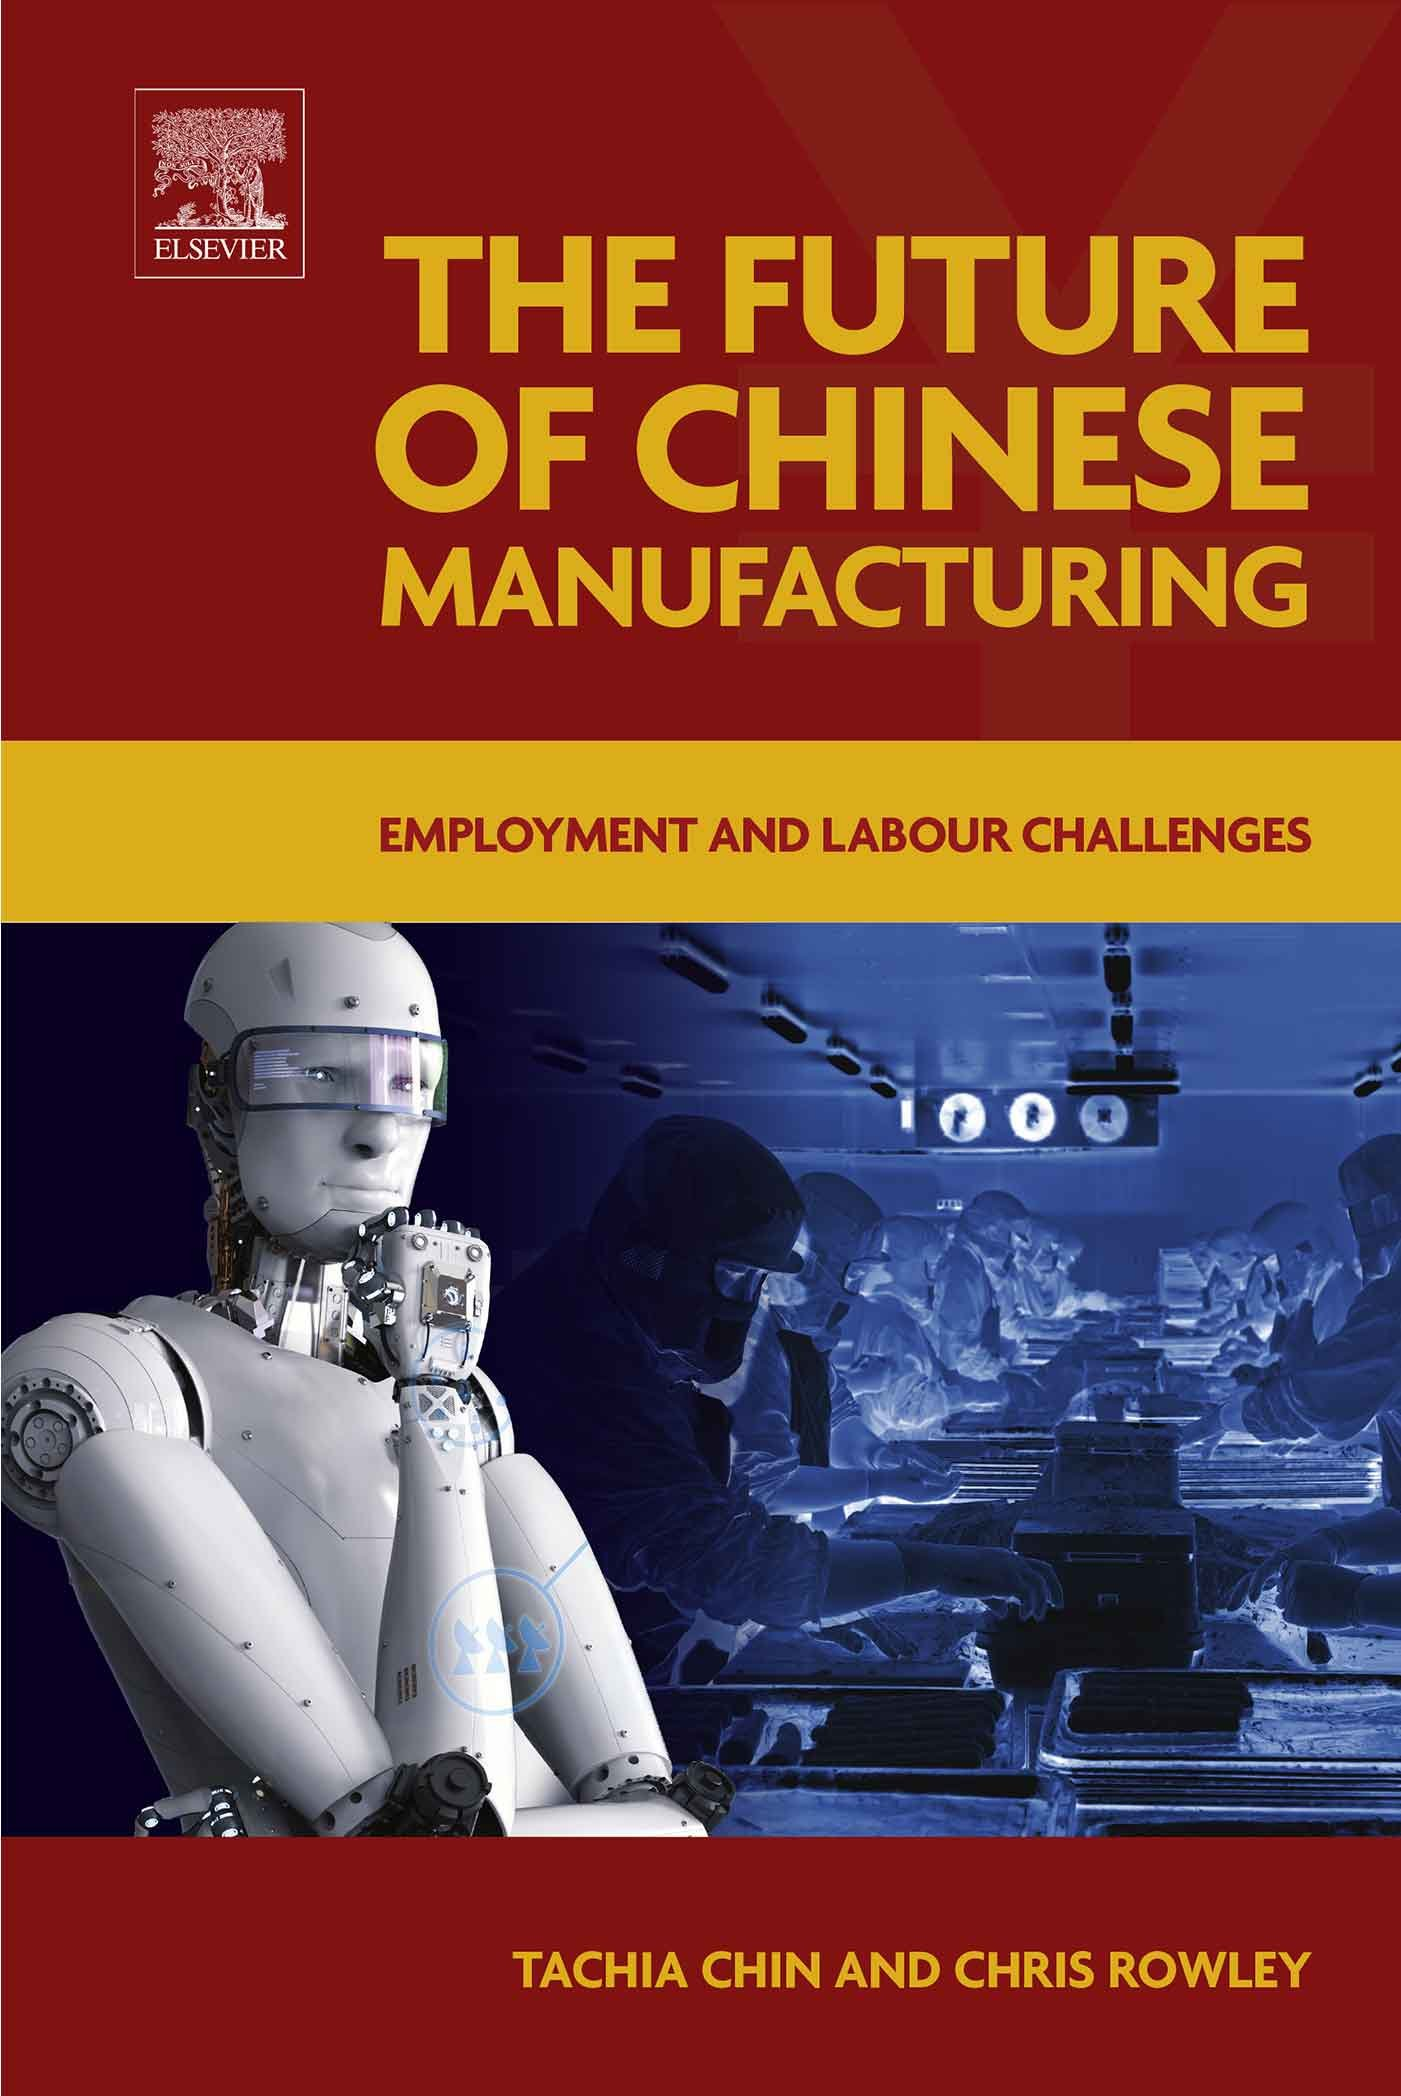 The Future of Chinese Manufacturing: Employment and Labour Challenges